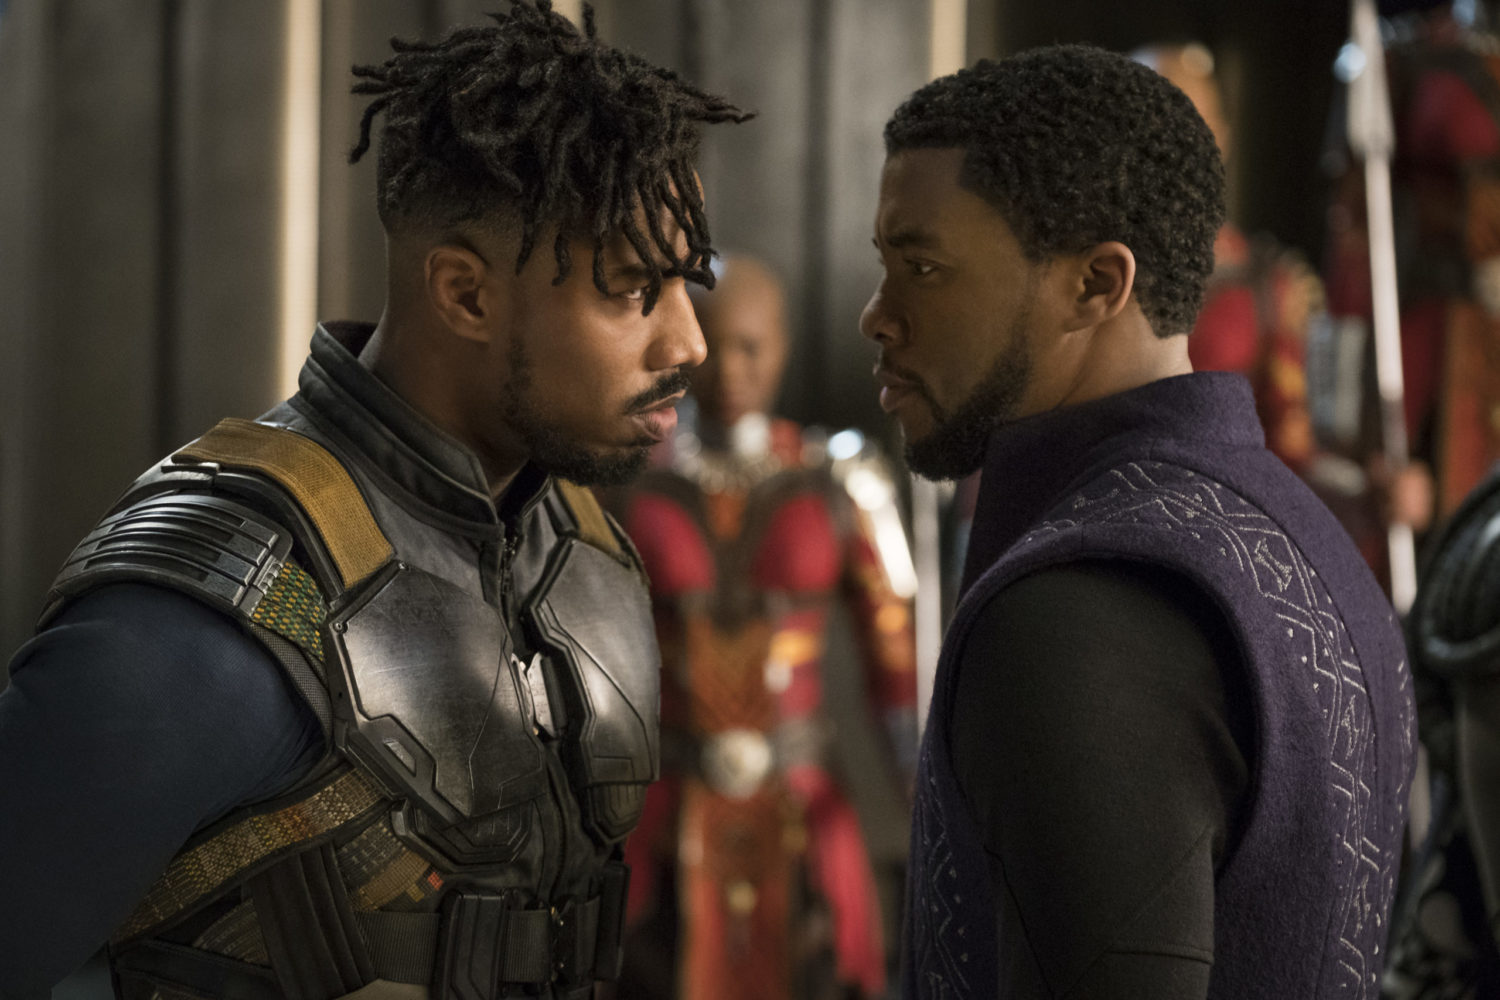 Erik Killmonger (Michael B. Jordan) and T'Challa/Black Panther (Chadwick Boseman) in Black Panther